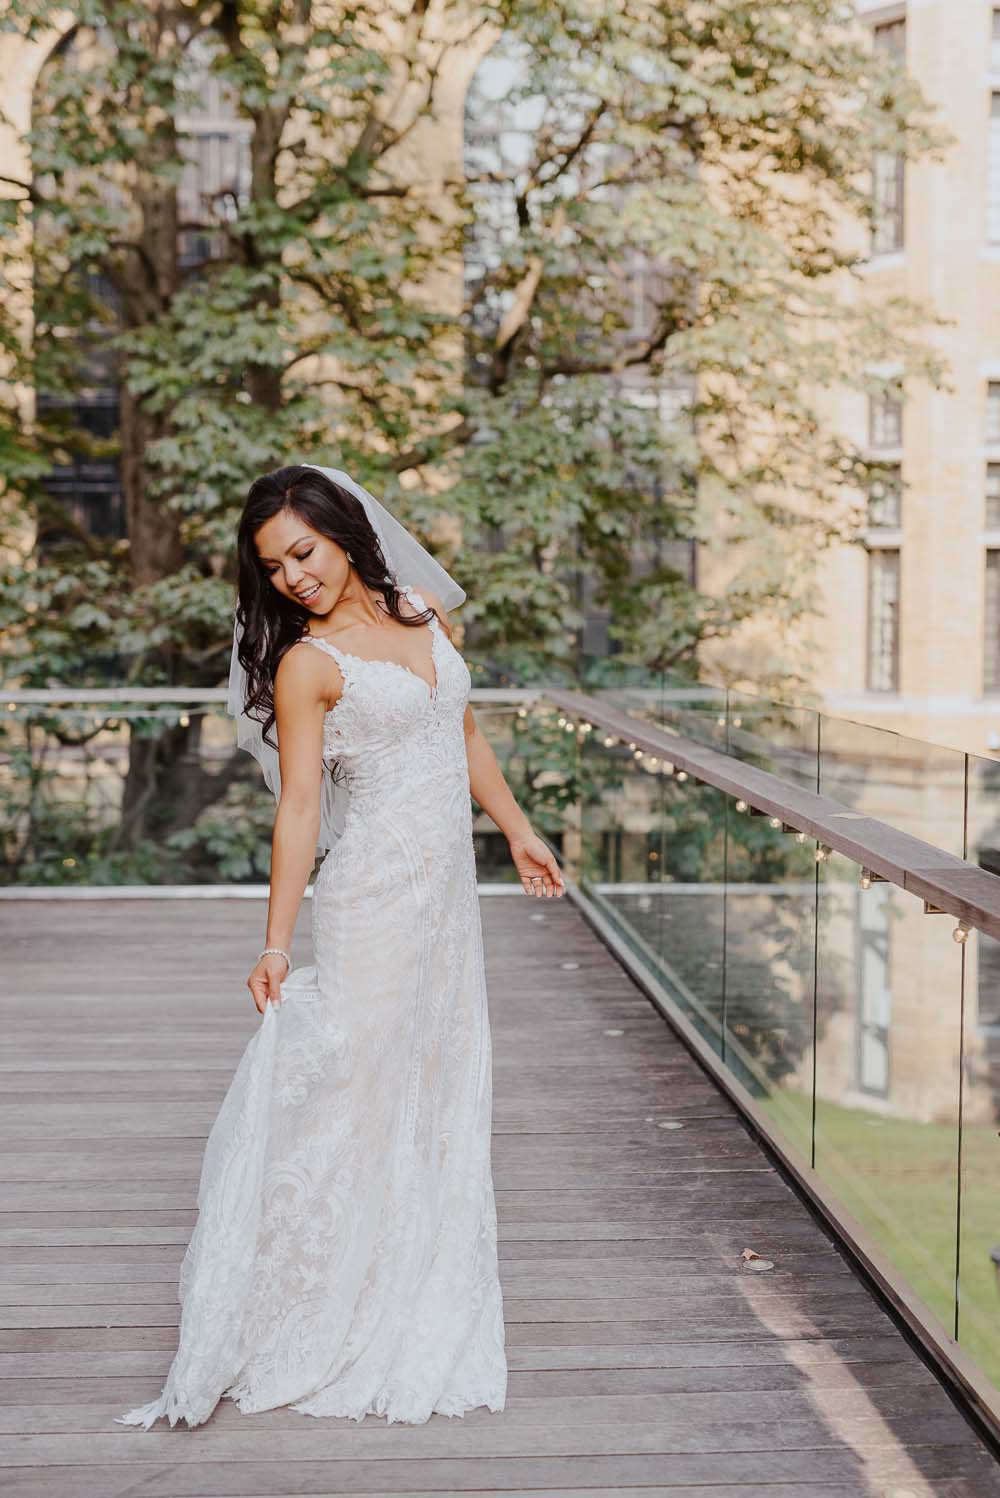 An Opulent Wedding At The Royal Conservatory Of Music - brides